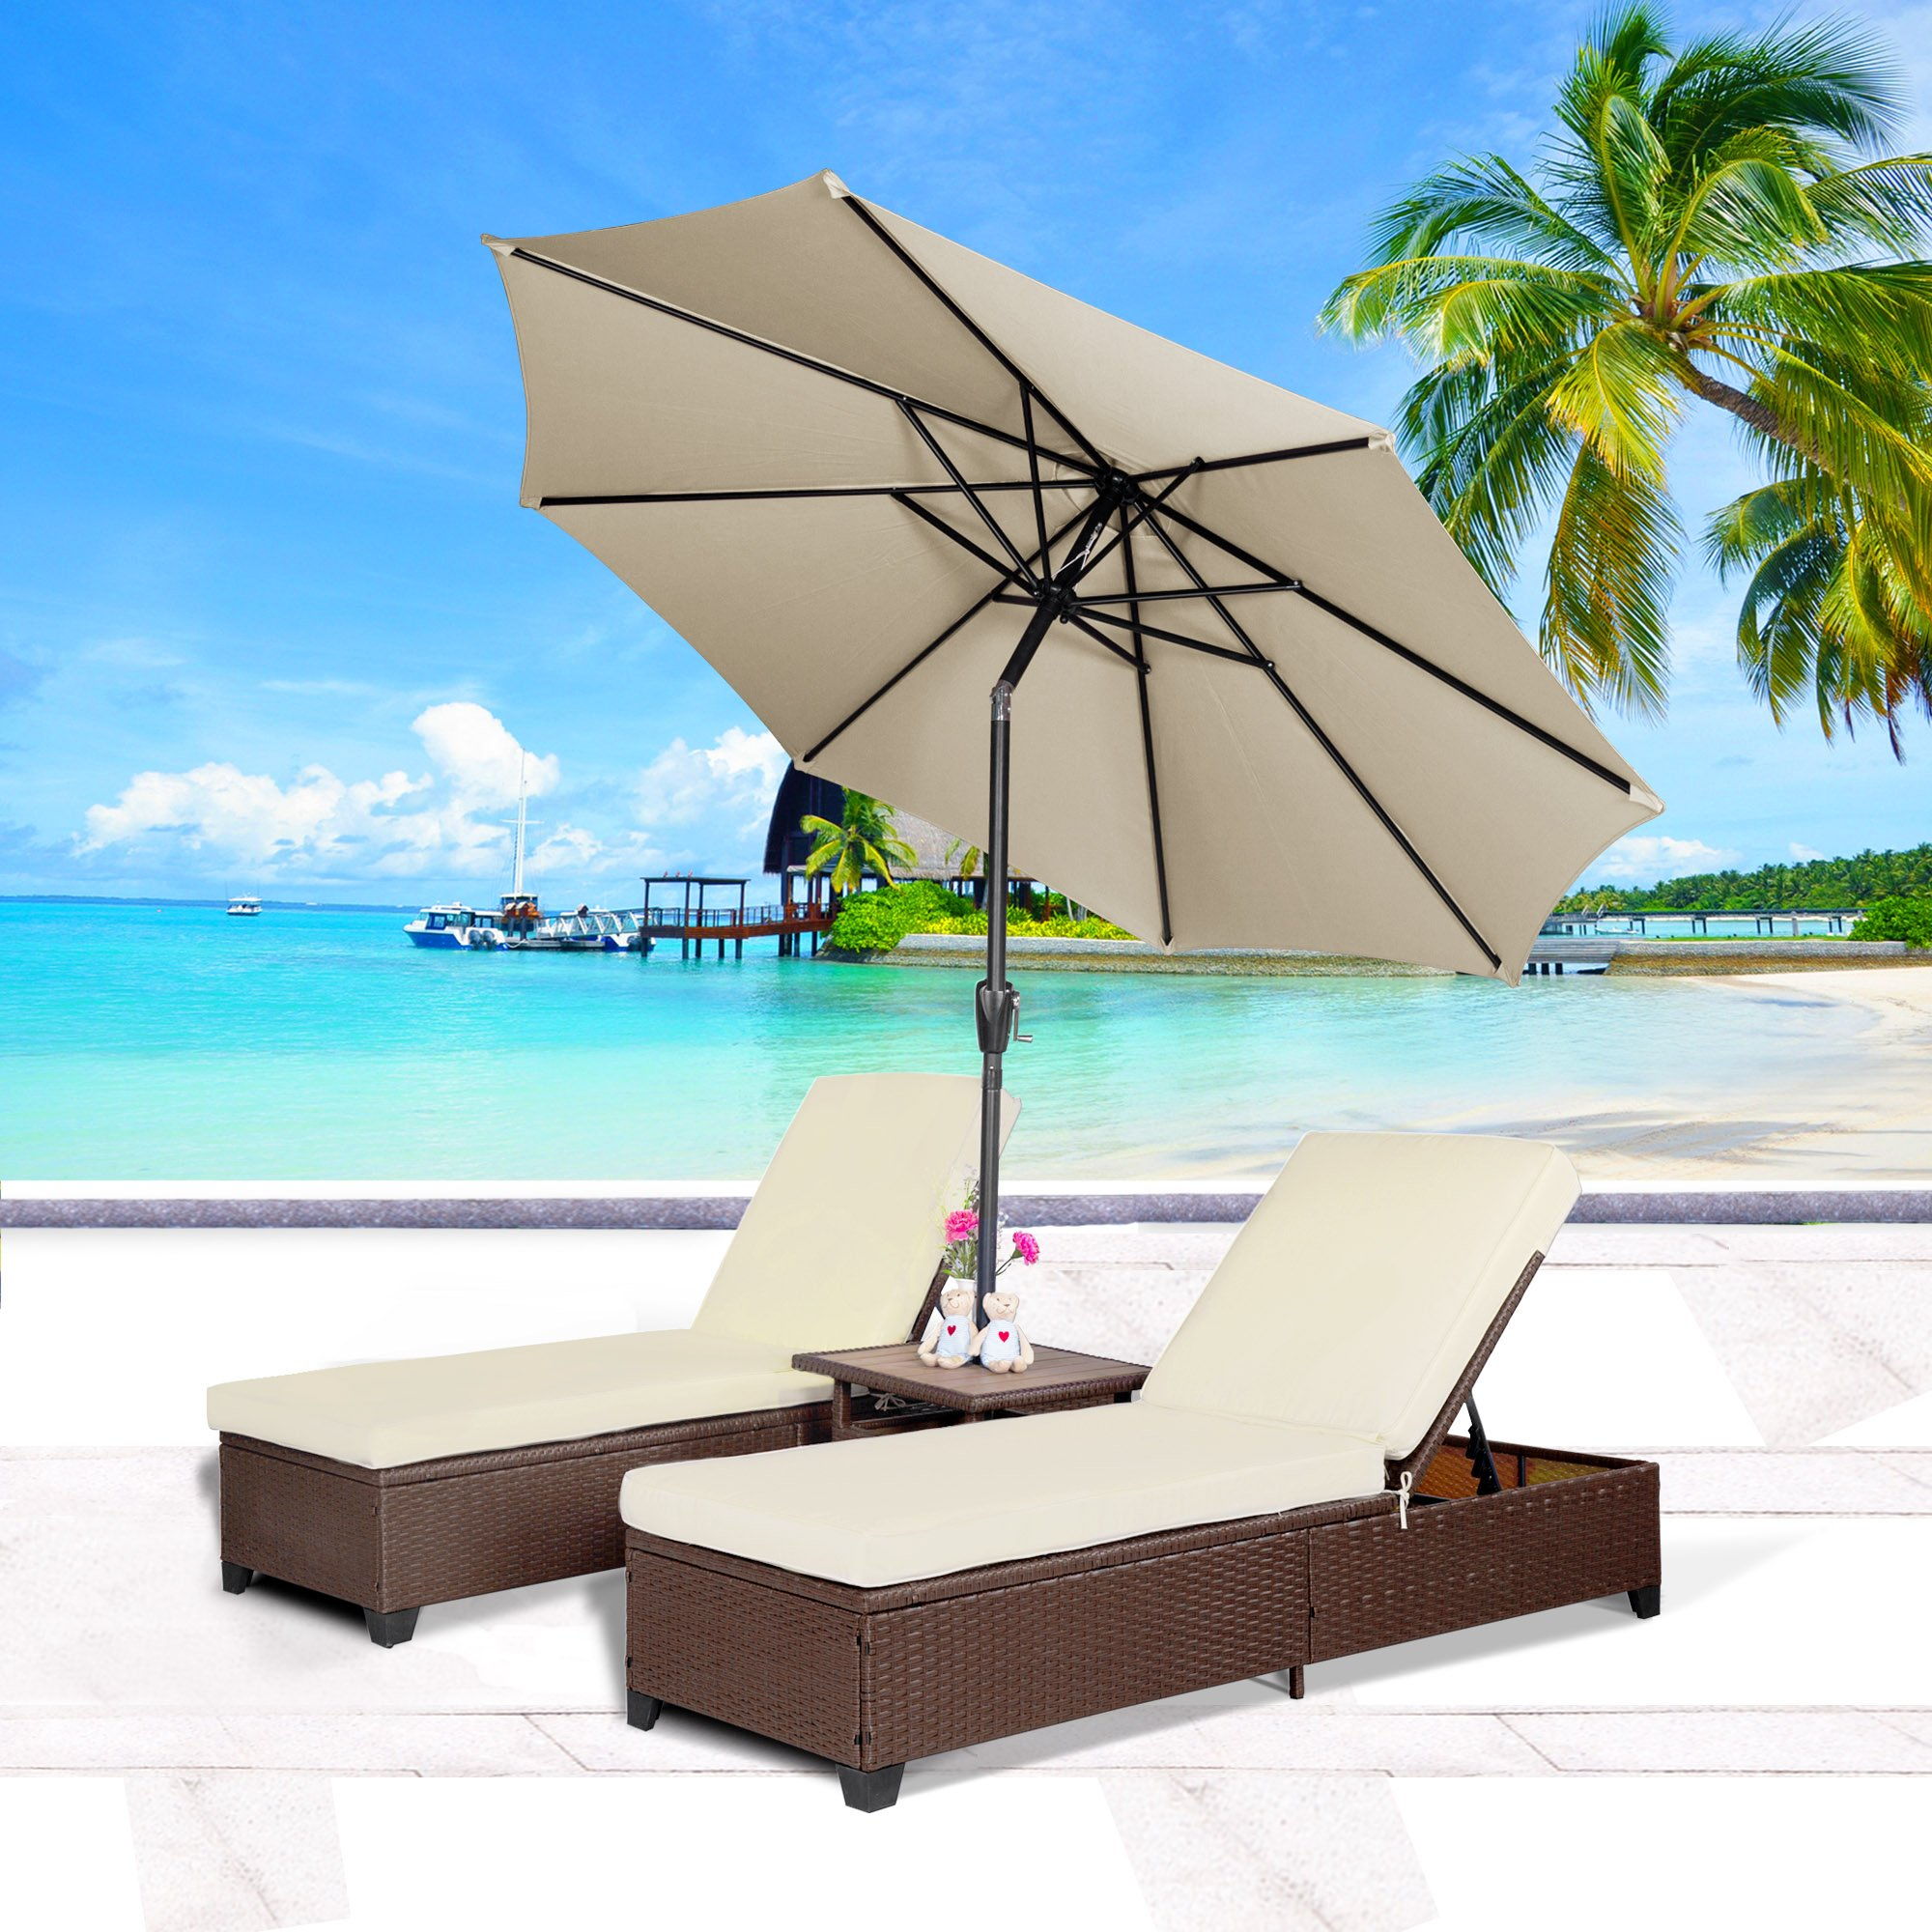 Buy Cloud Mountain 3pc Outdoor Rattan Chaise Lounge Chair